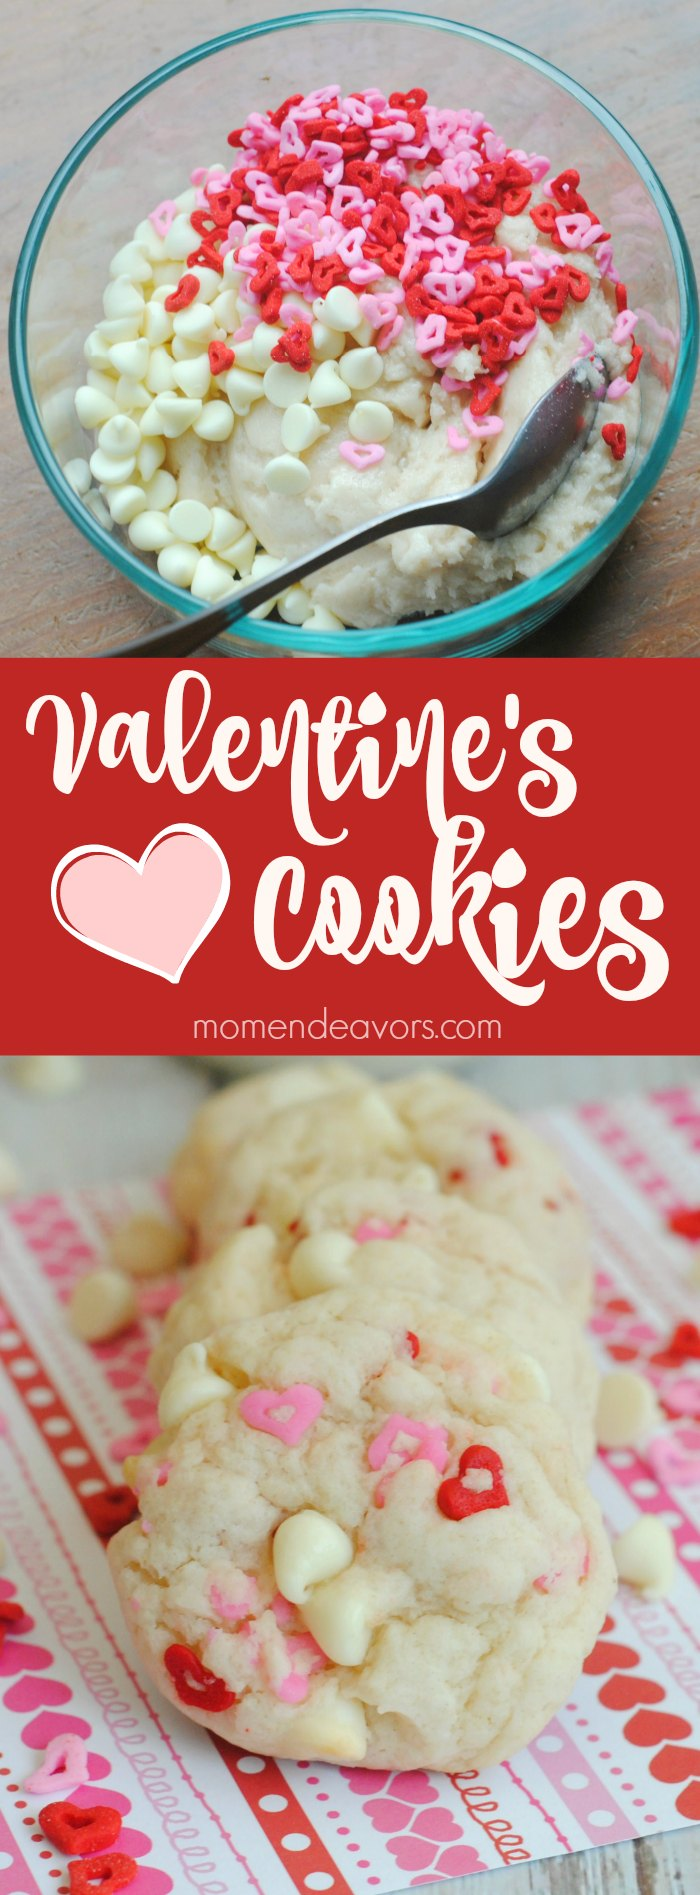 Easy Valentine's Cookies